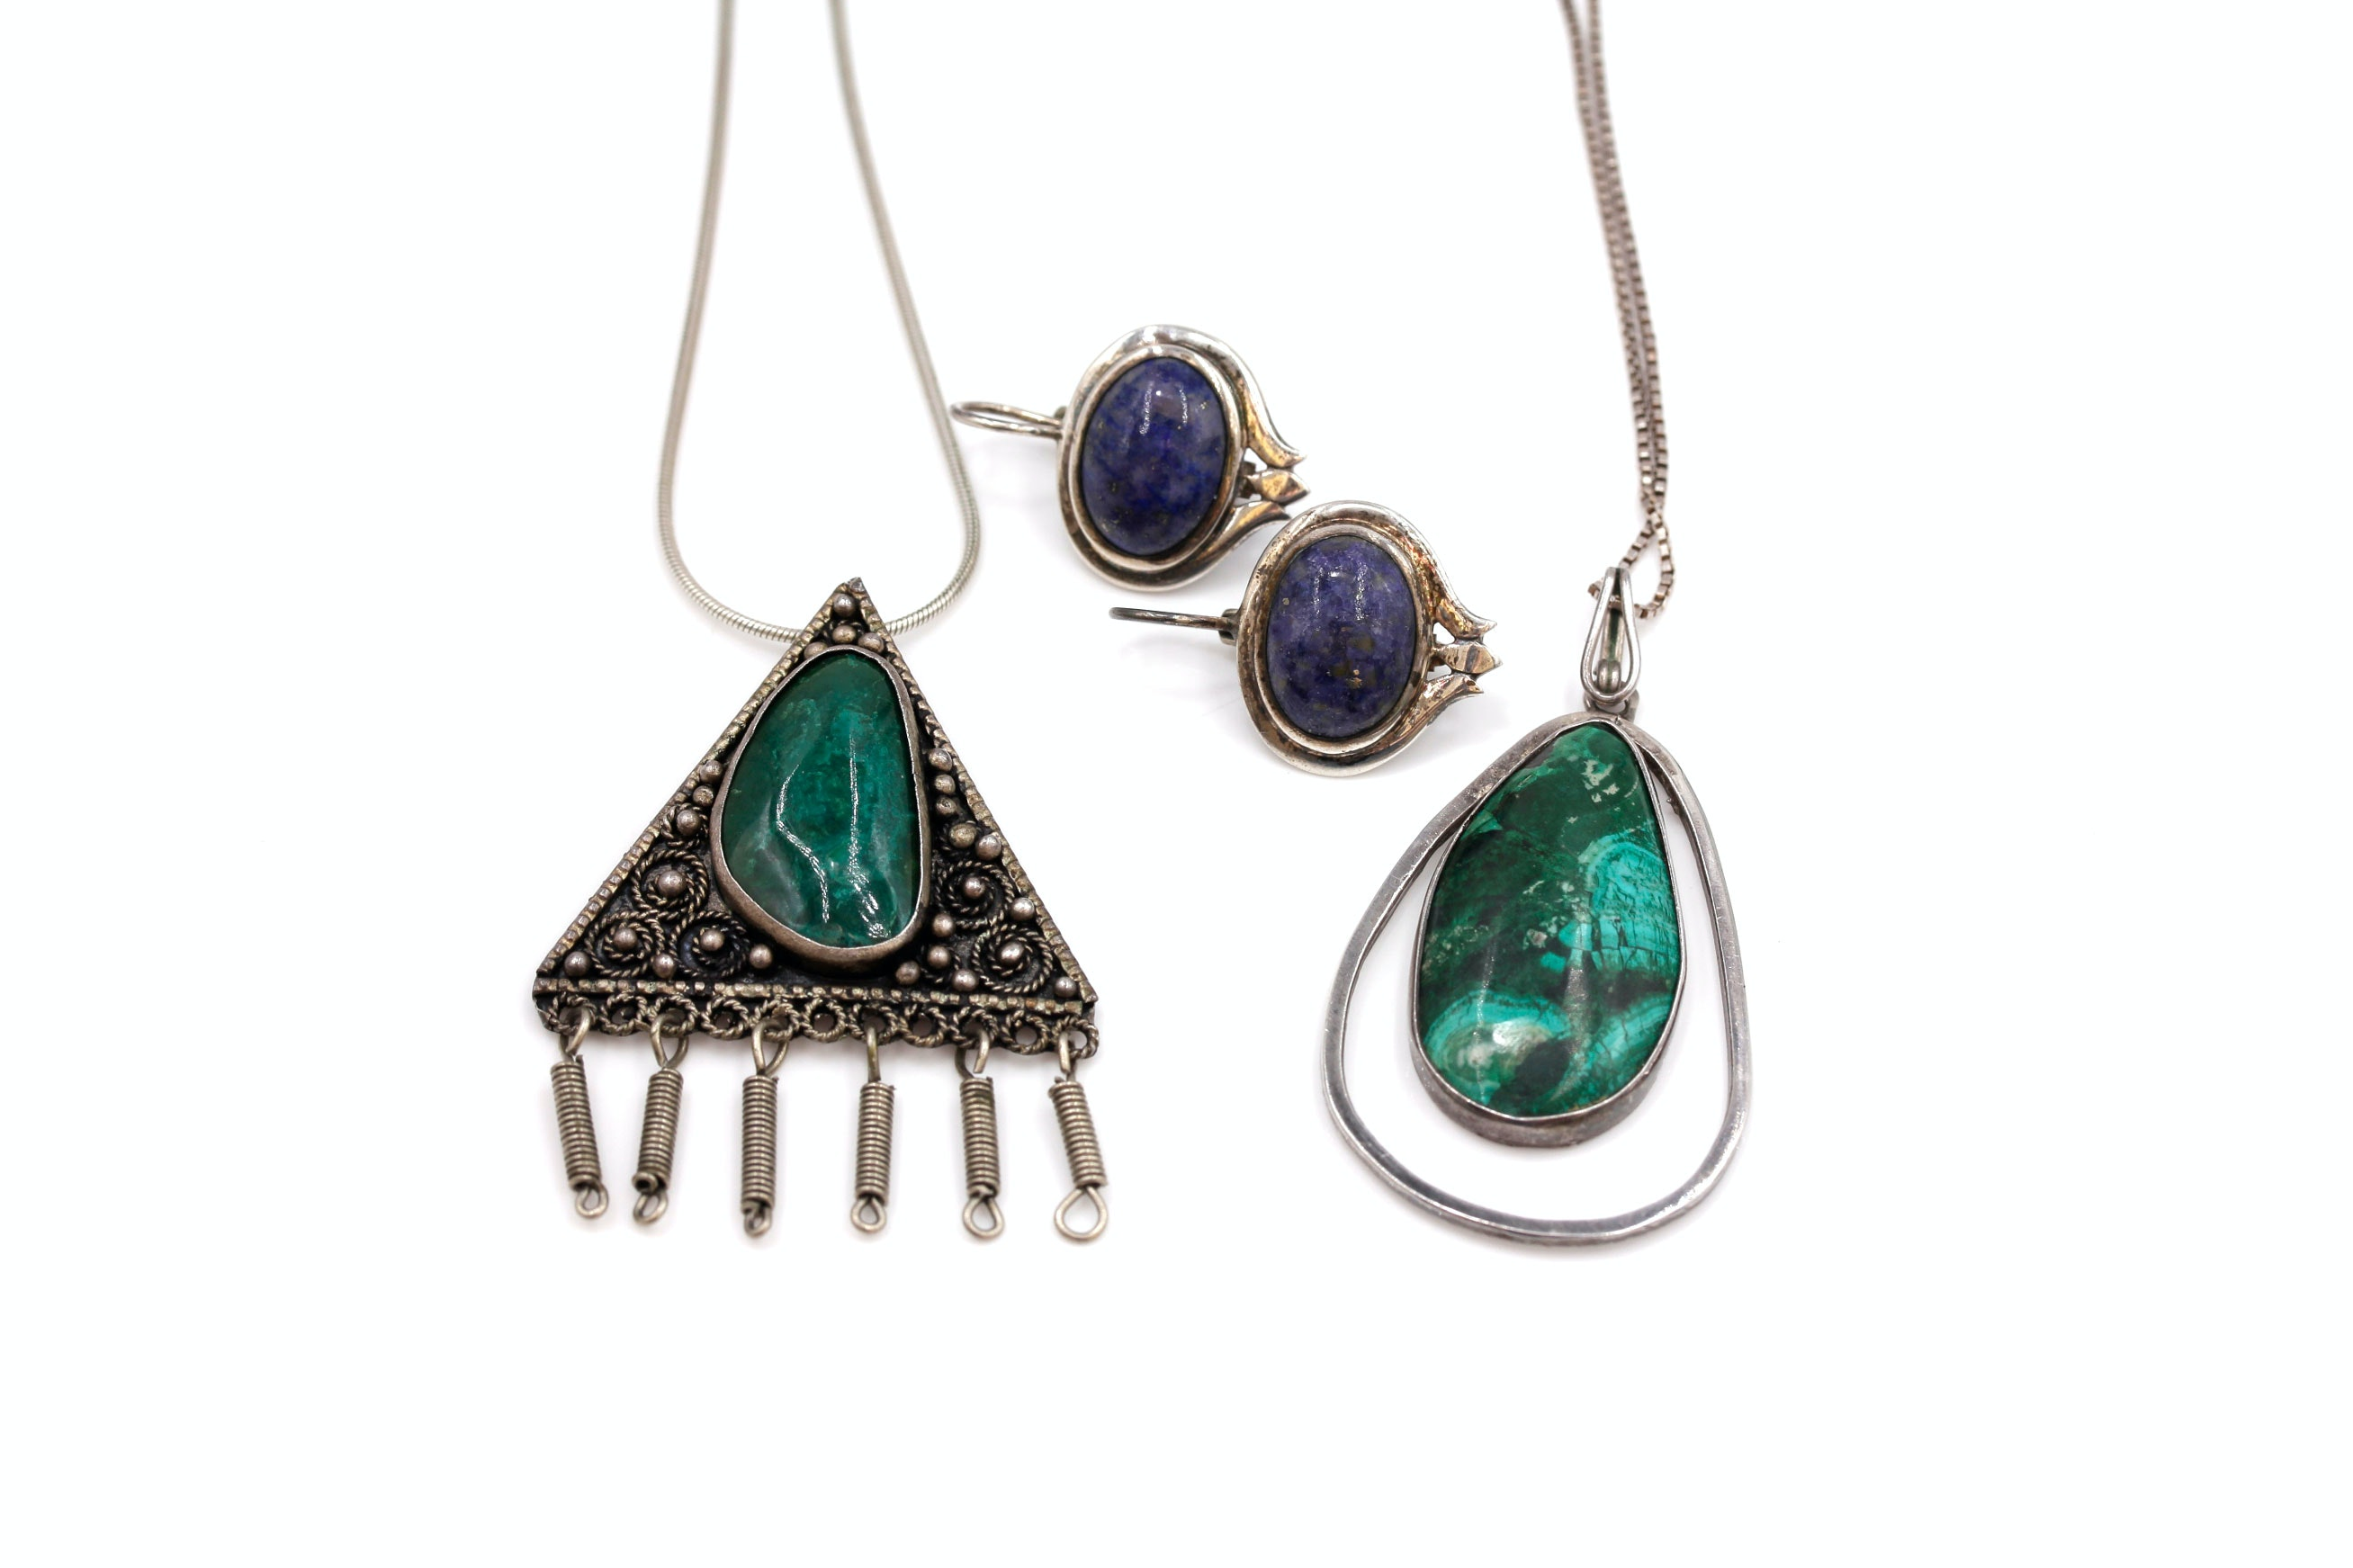 Sterling Silver and Silver Eilat Stone Necklaces and Lapis Lazuli Earrings